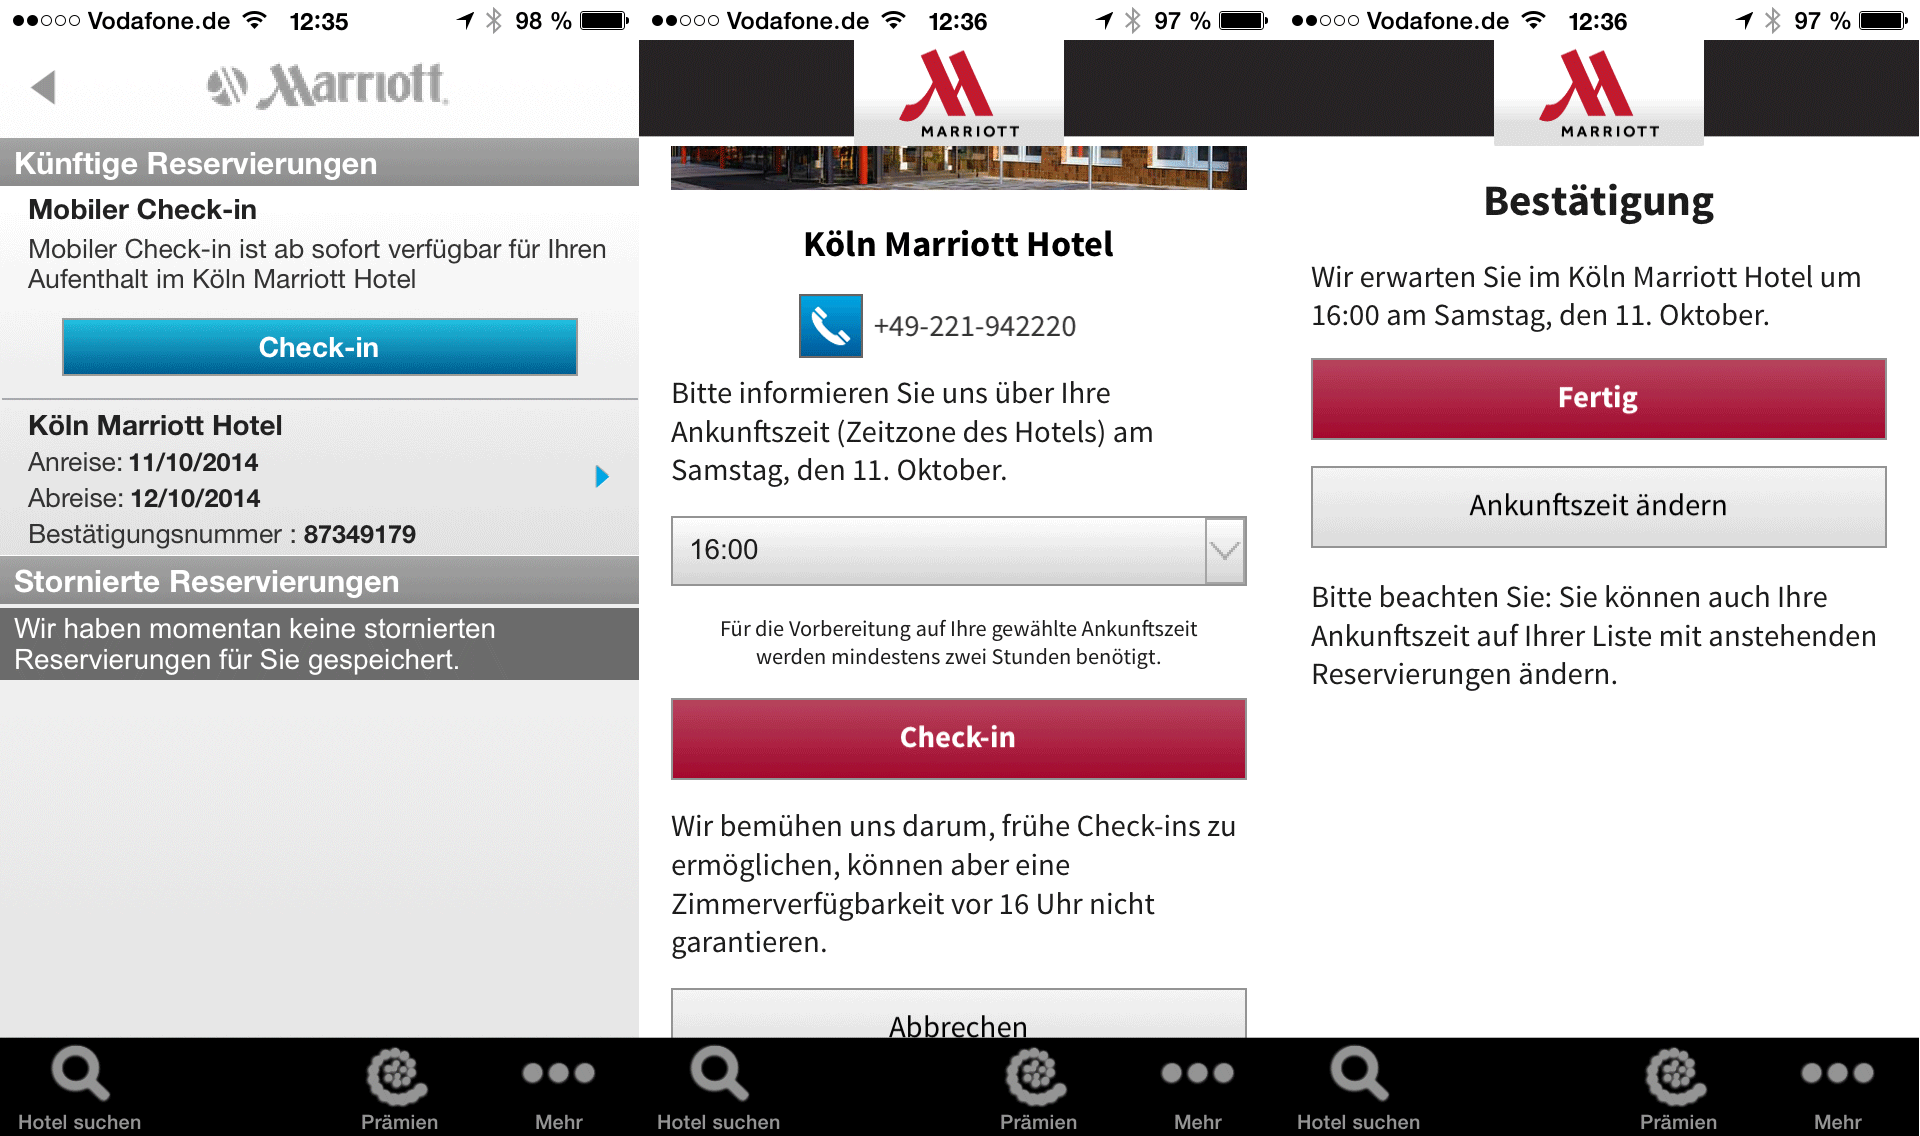 In recognition of its increasingly connected mobile guests, Marriott Hotels is rolling out mobile check-in at hotels in the United States and Canada. Marriott Rewards members can check-in after 4 p.m. the day before their arrival and will receive an automatic notification when their room is ready.